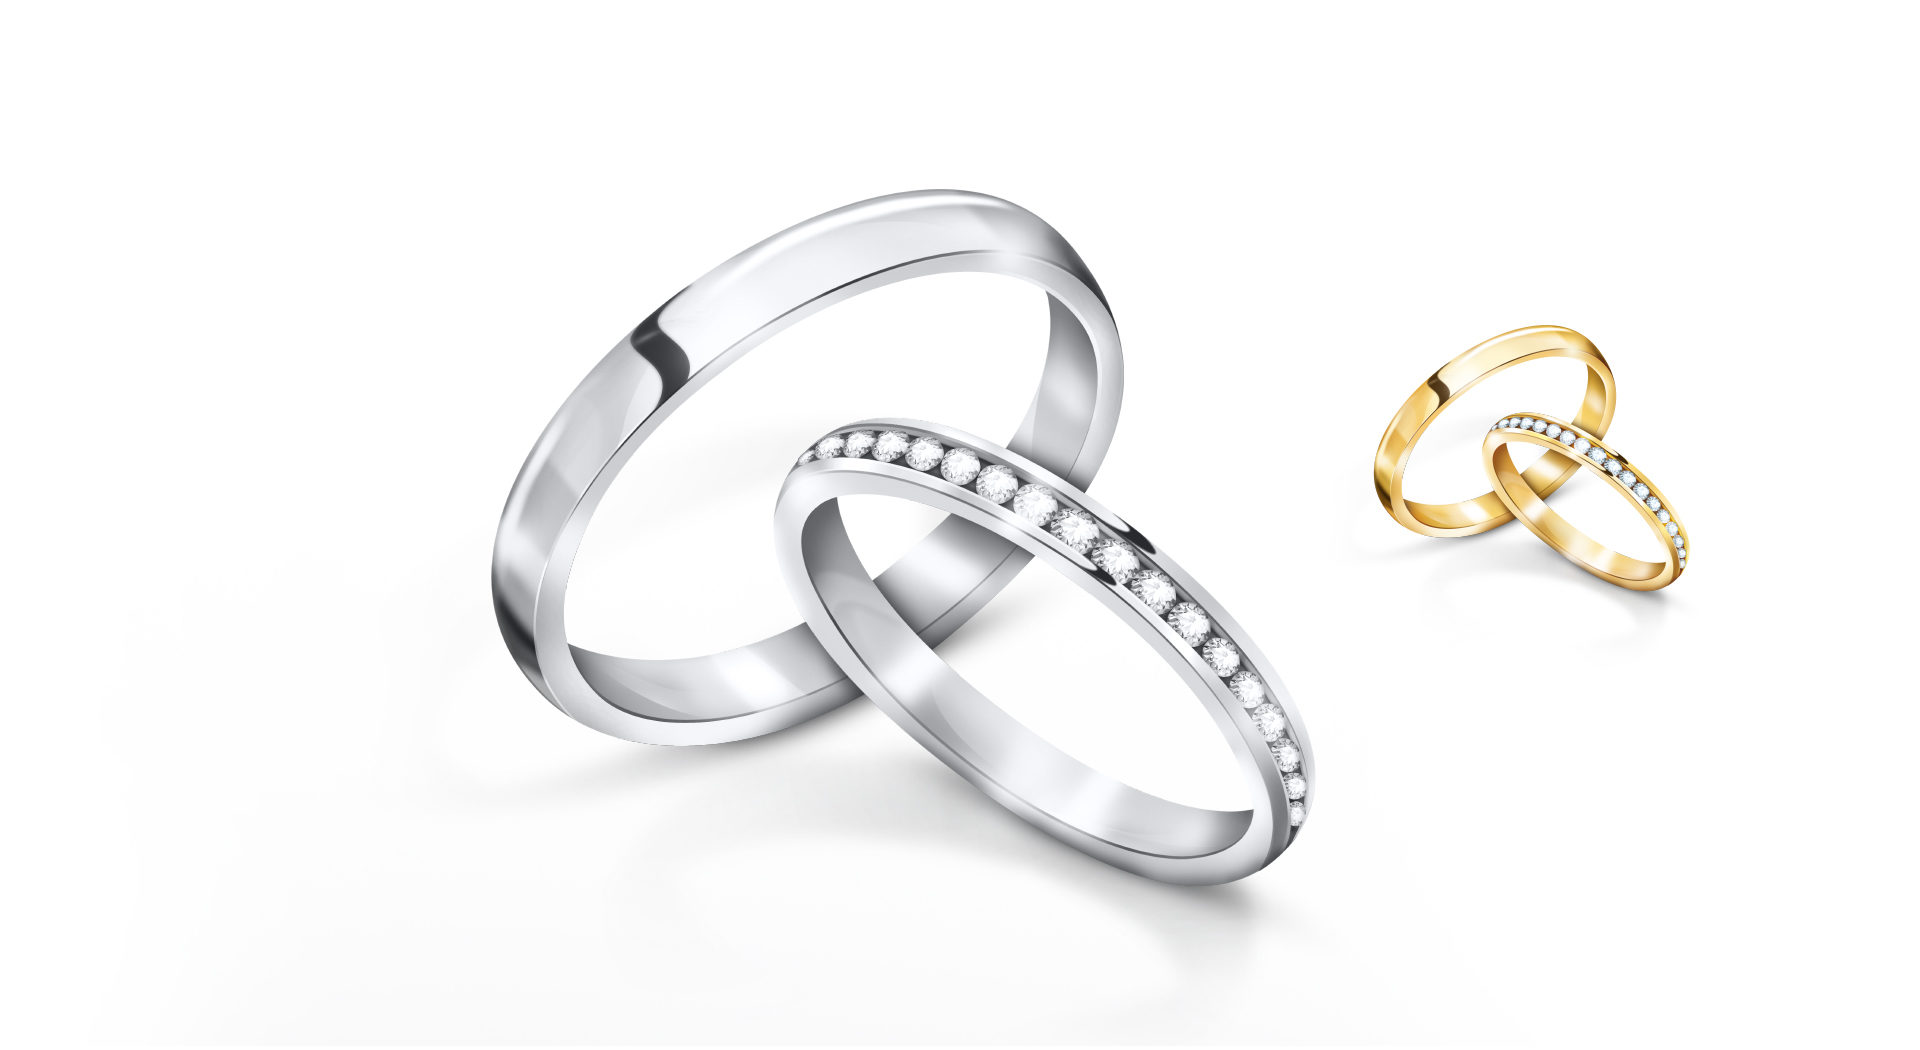 Gold and silver retouched wedding rings